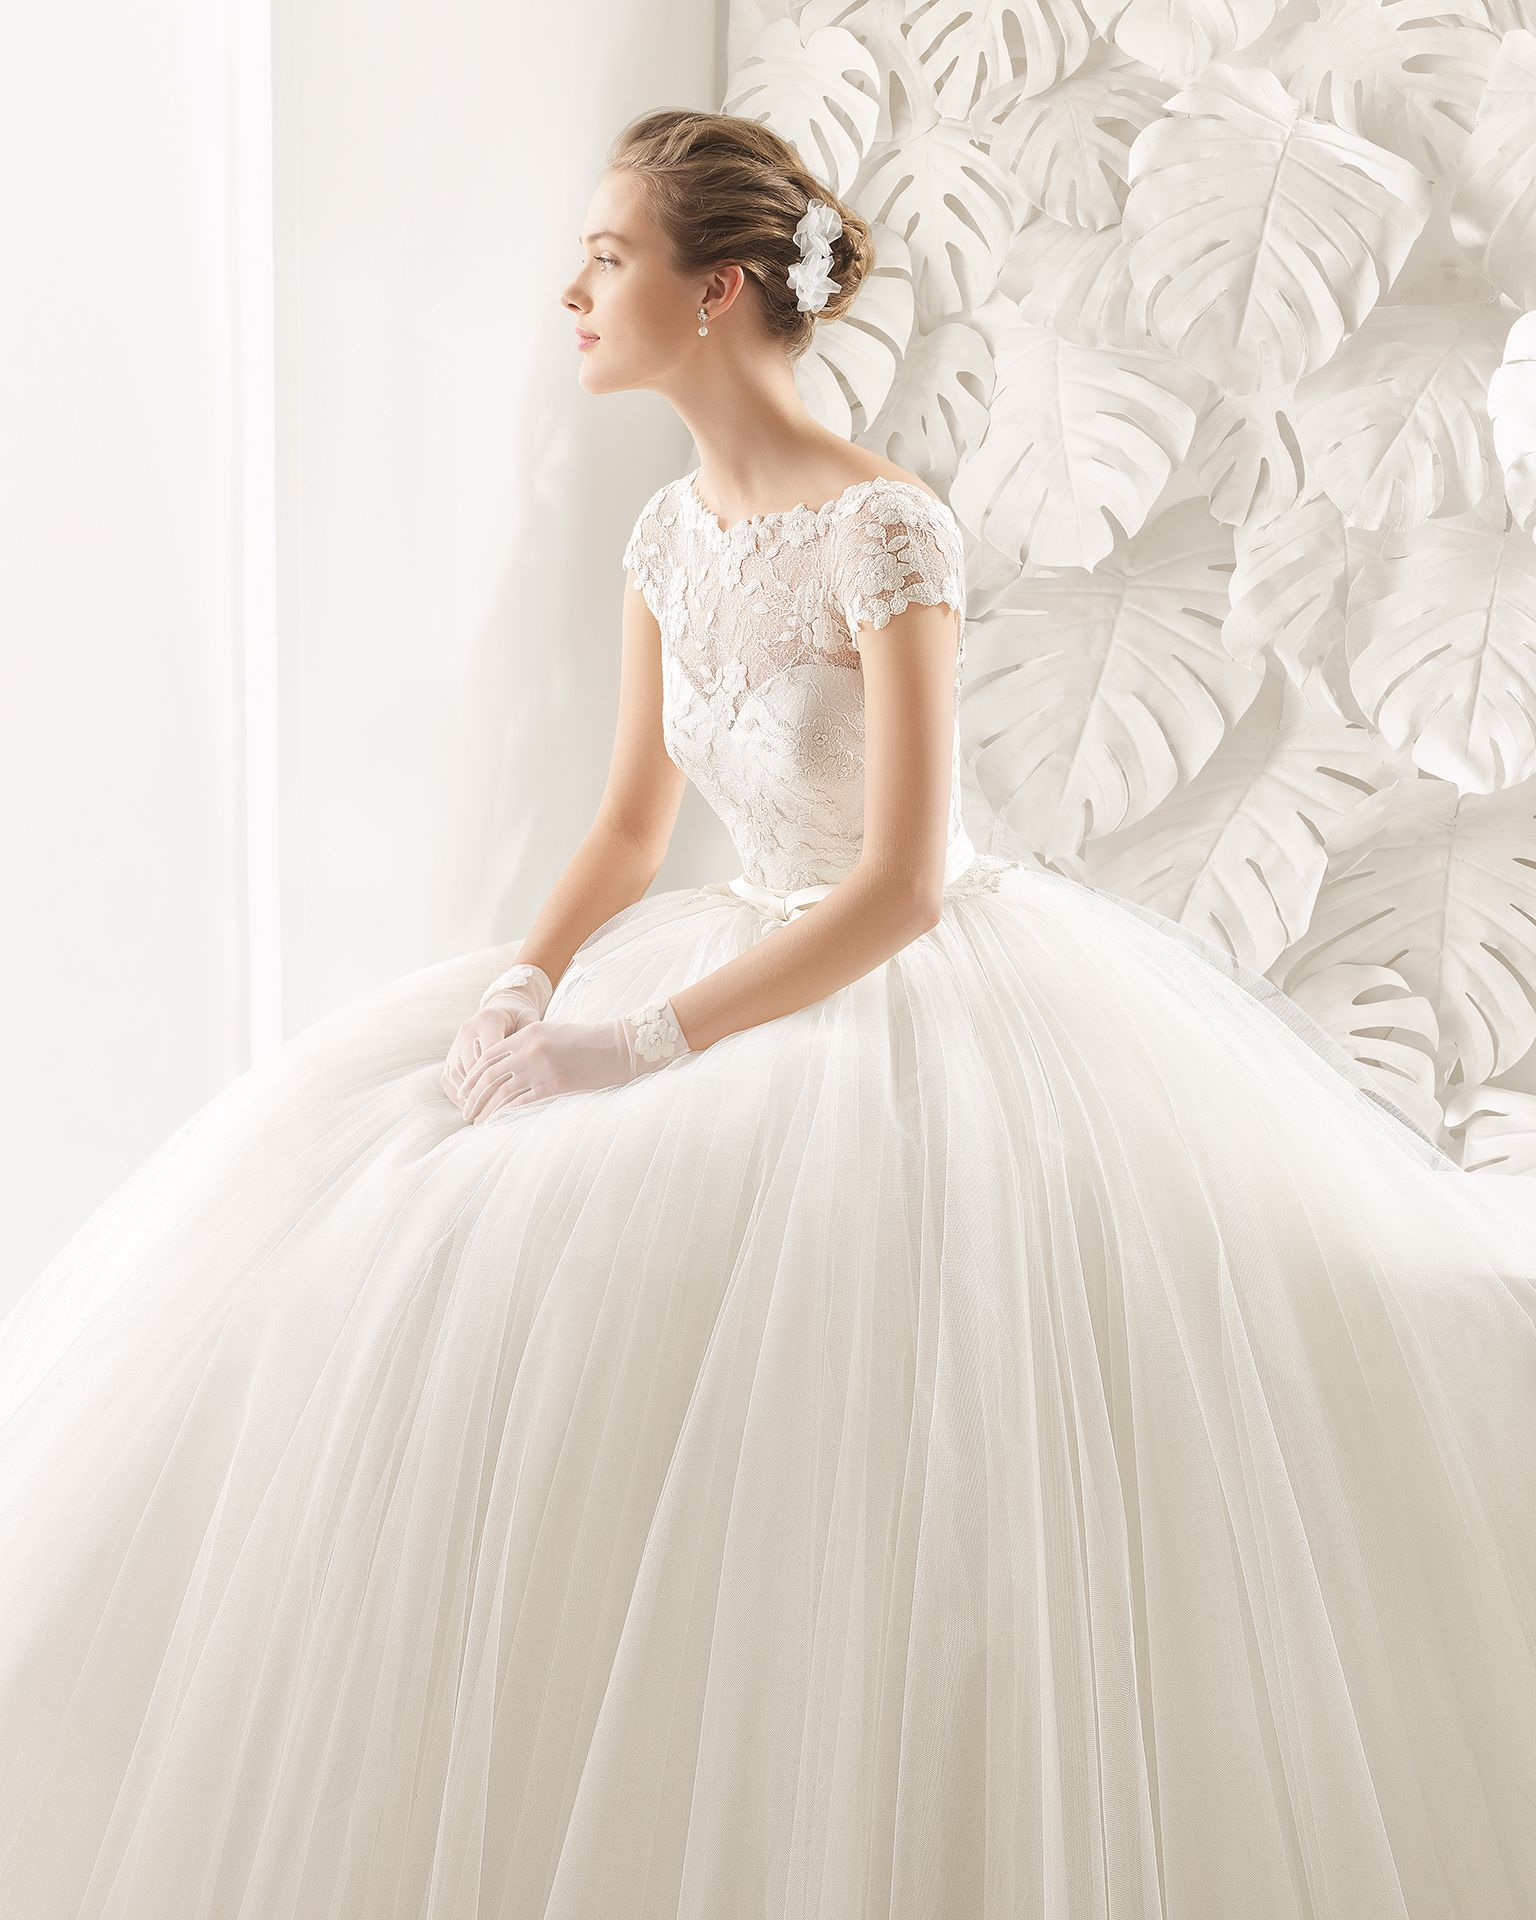 Neida bridal collection rosa clará lace wedding gowns